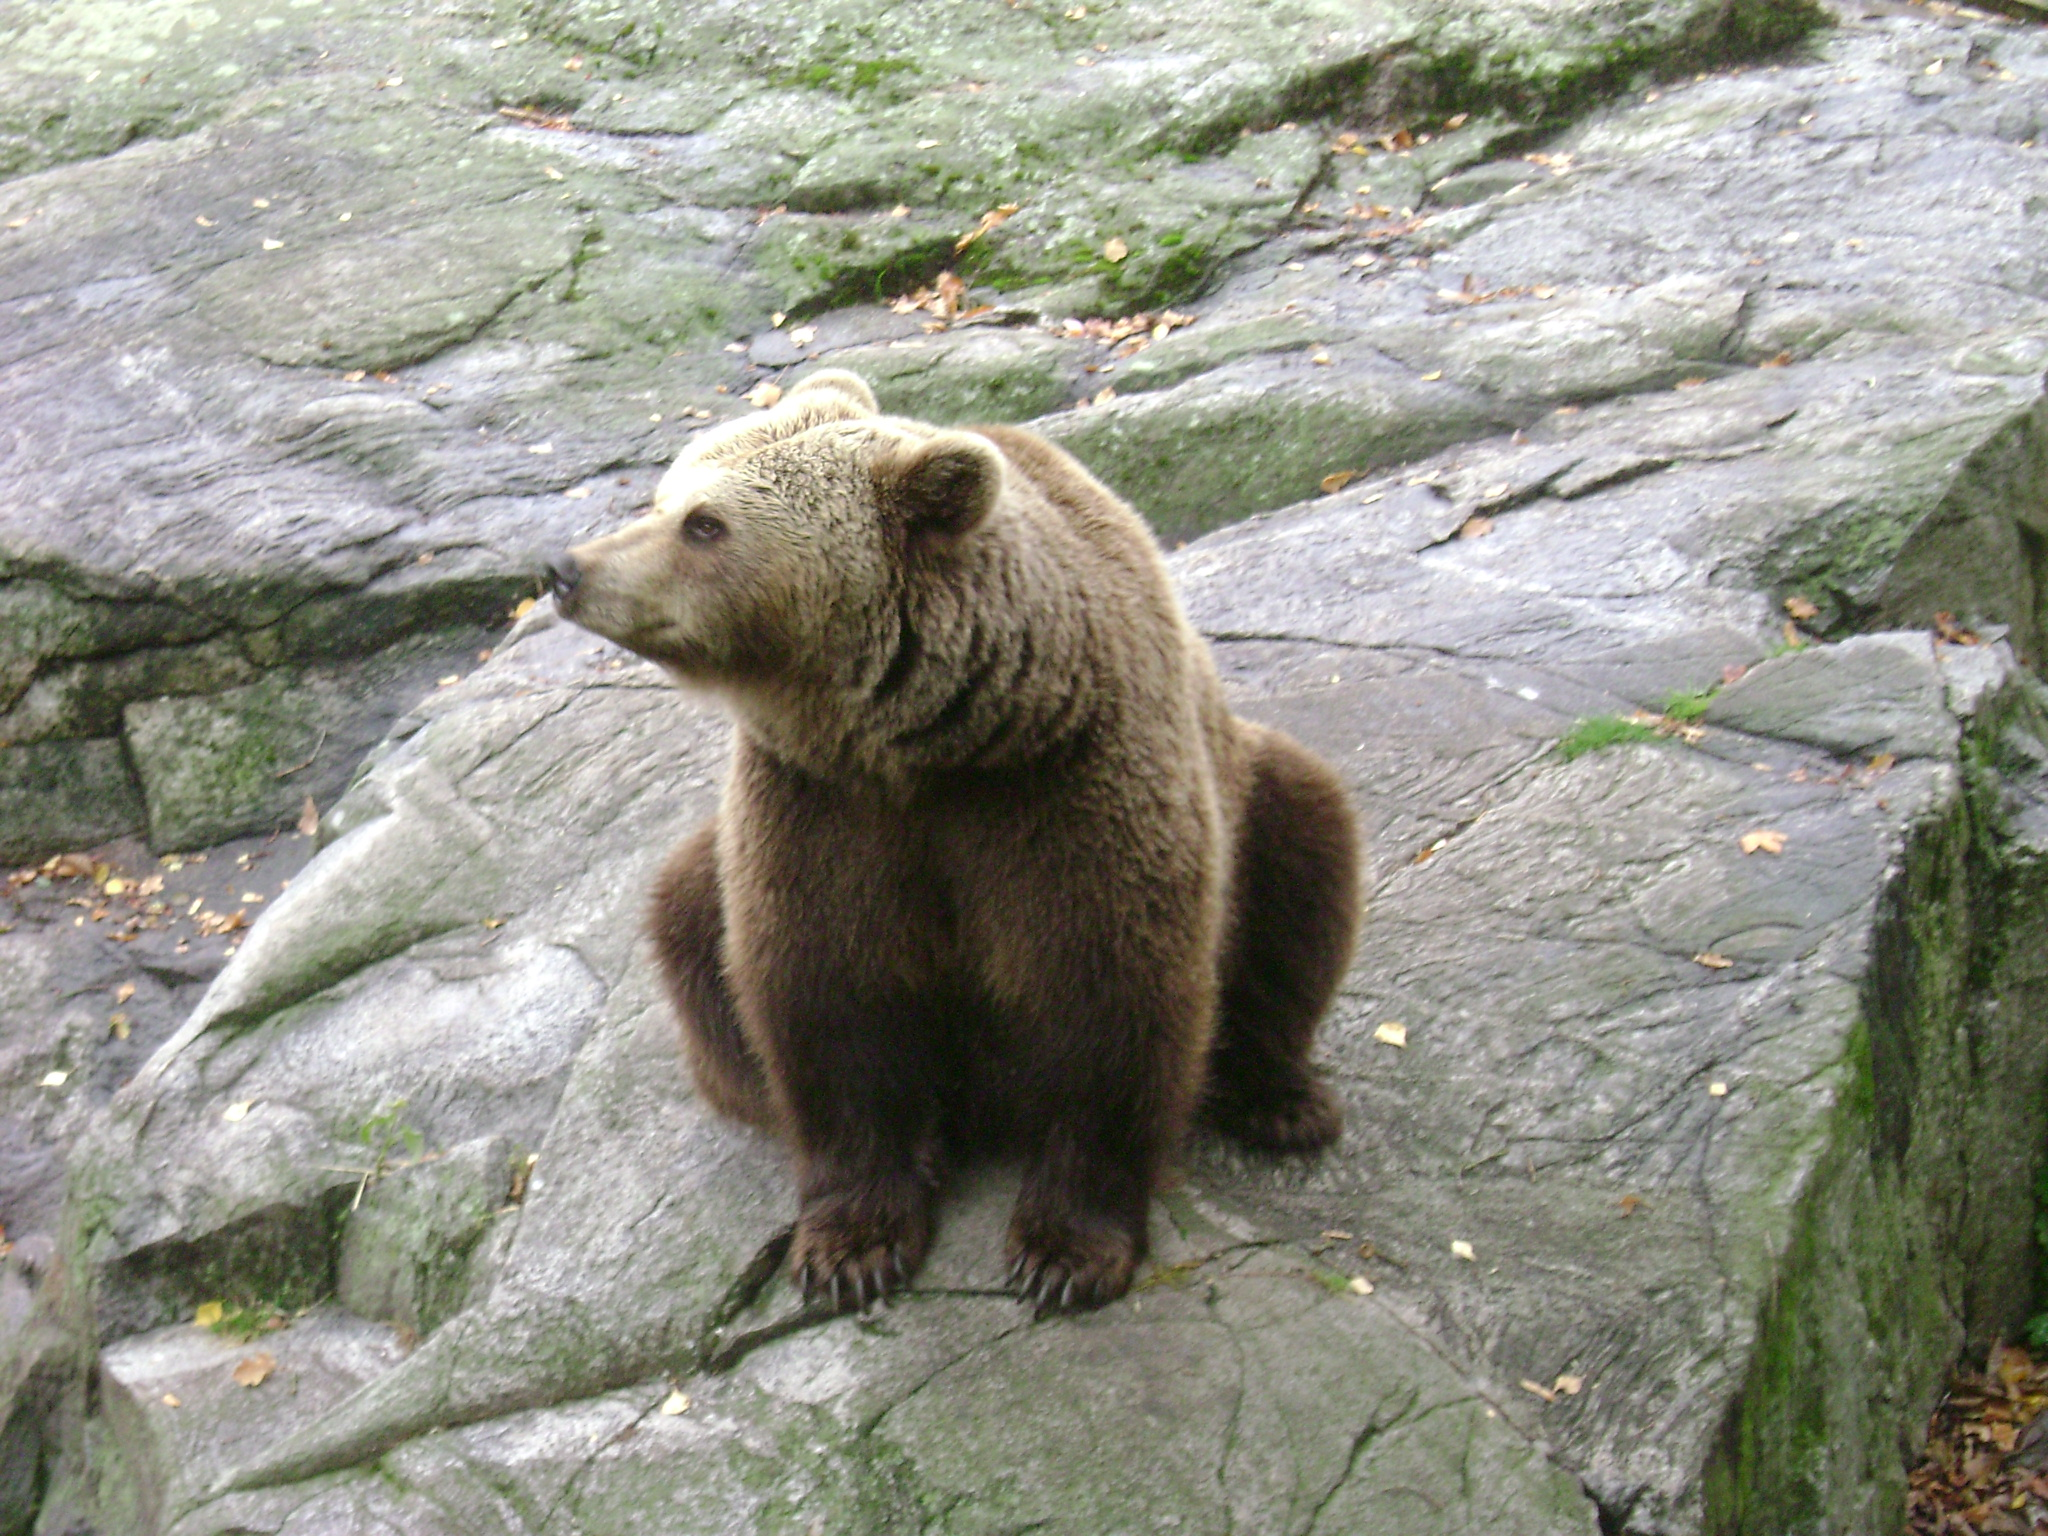 A Brown Or Grizzly Bear